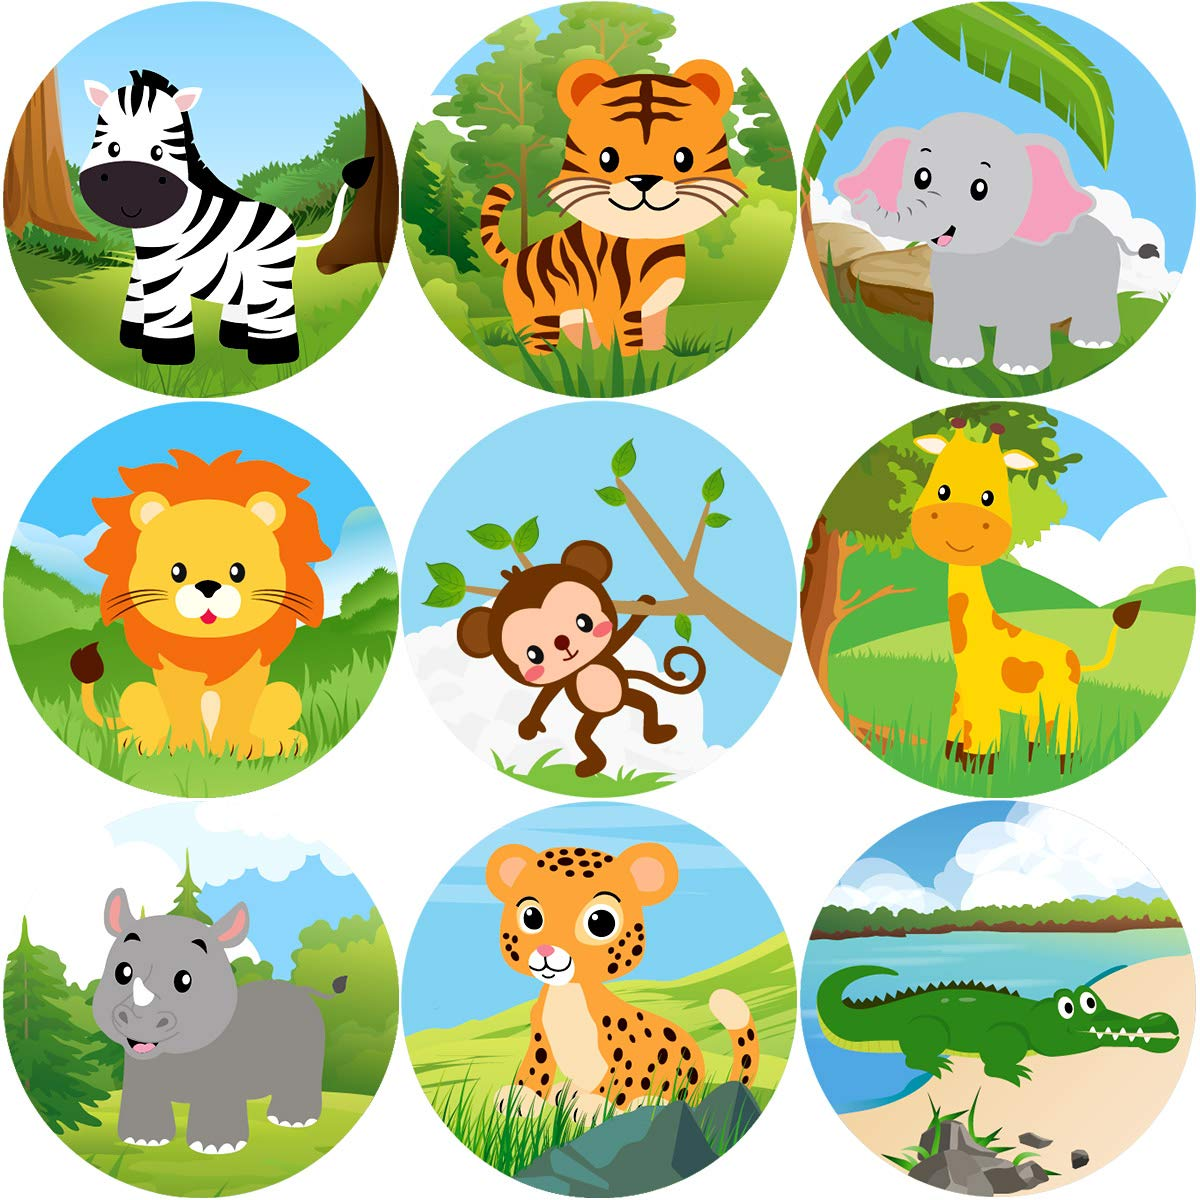 Fancy Land Zoo Animal Sticker Jungle Friends Perforated 200Pcs Per Roll for Kids Party